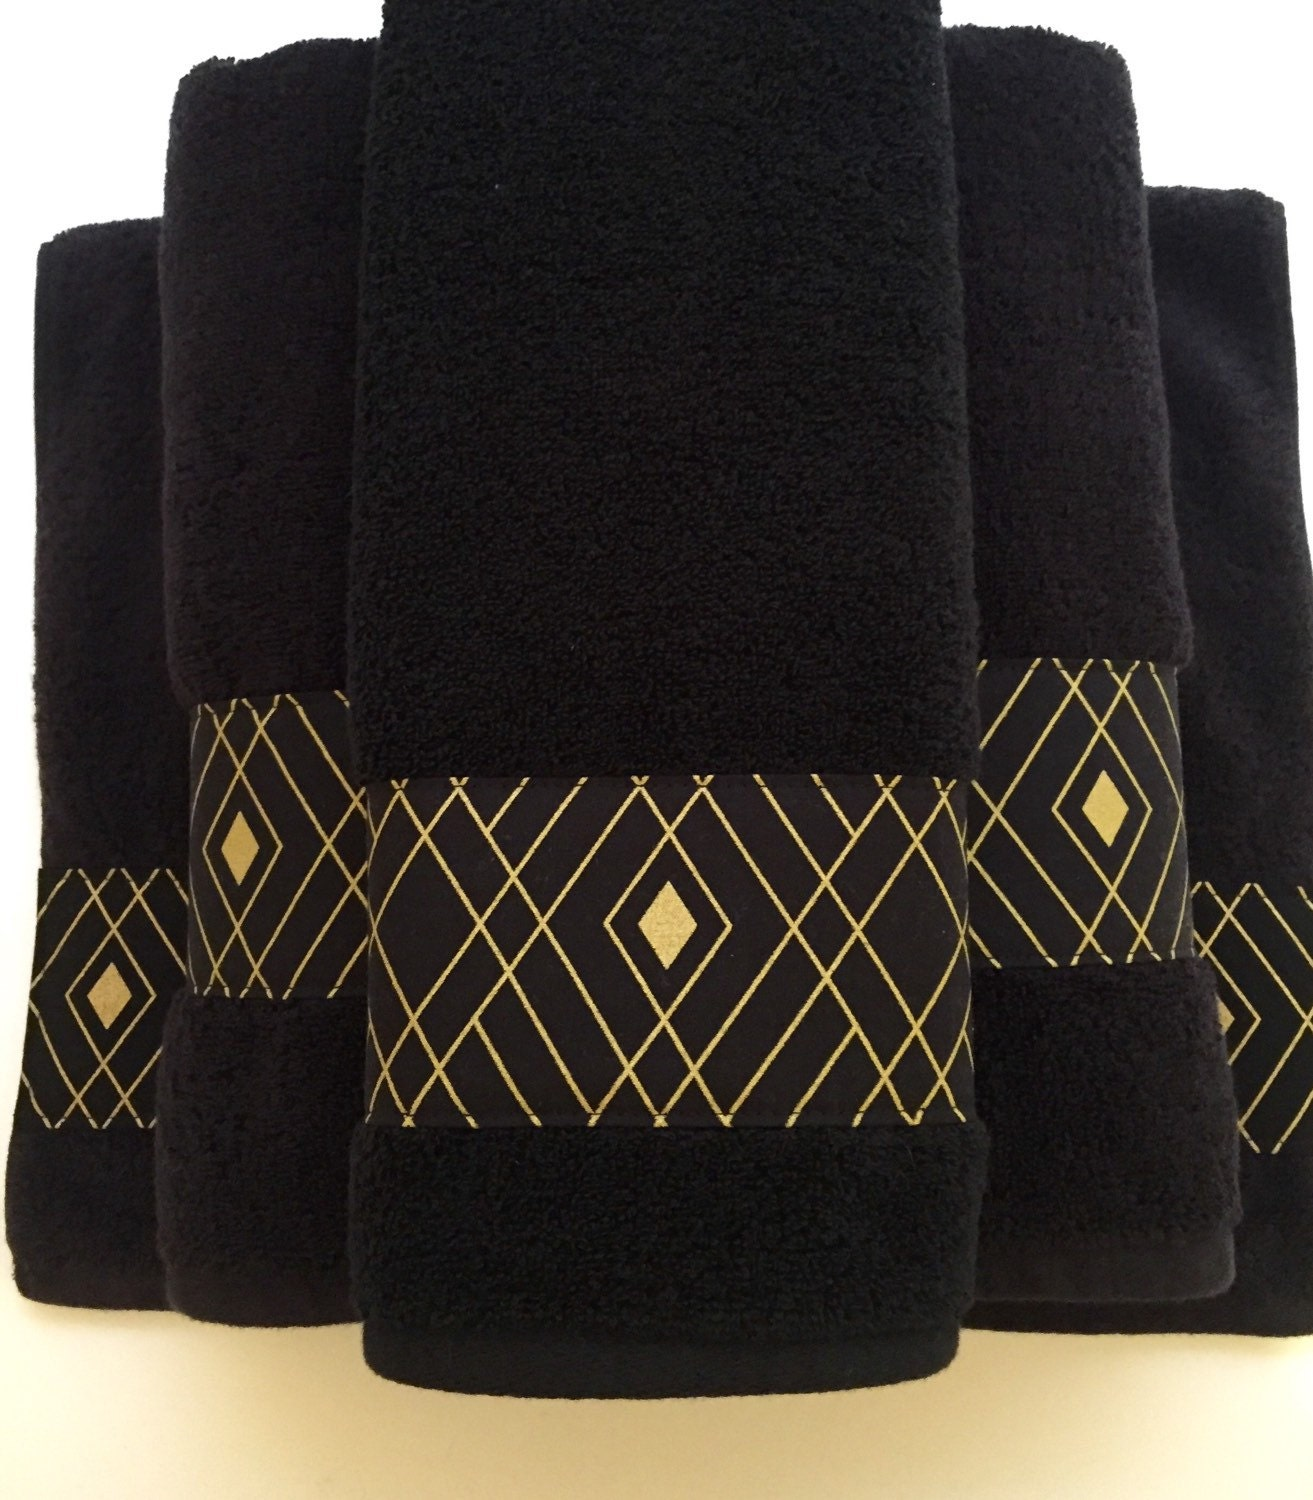 Bath Towel Sets Black And White: Black Gold Towels Custom Towels Black Bathroom Black